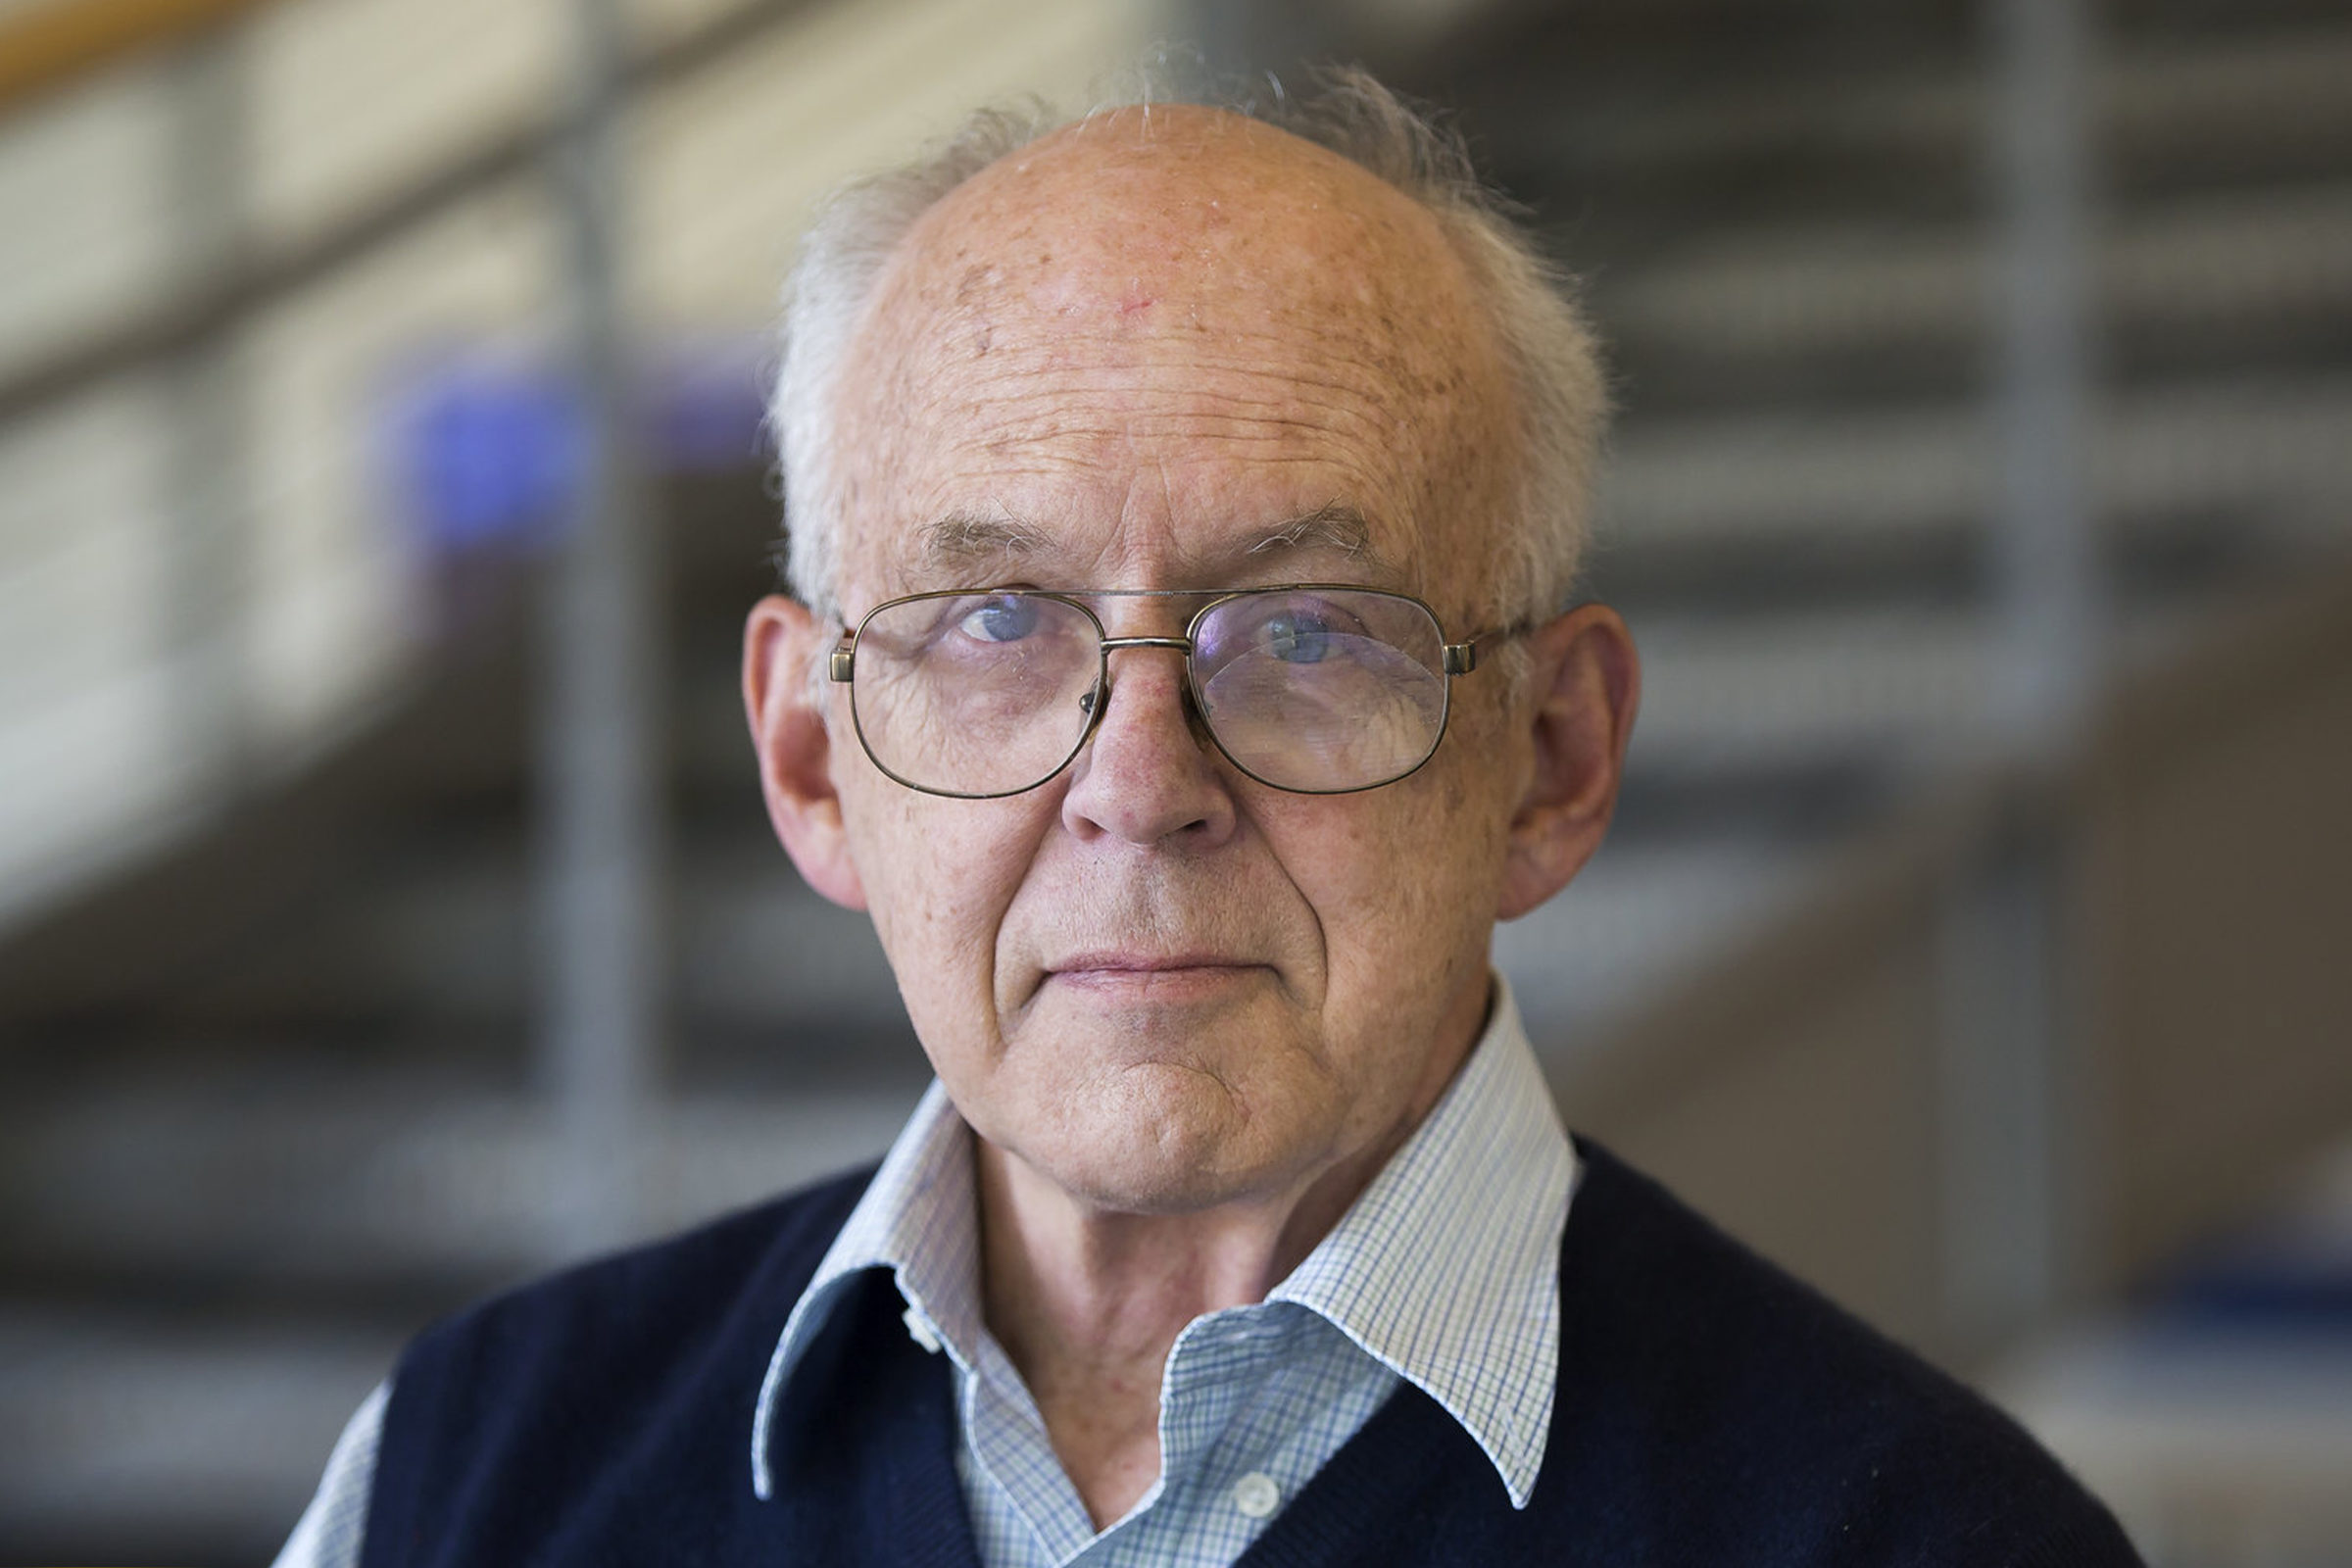 Professor Edward Larsen retires from NERS after 33-year career in nuclear engineering